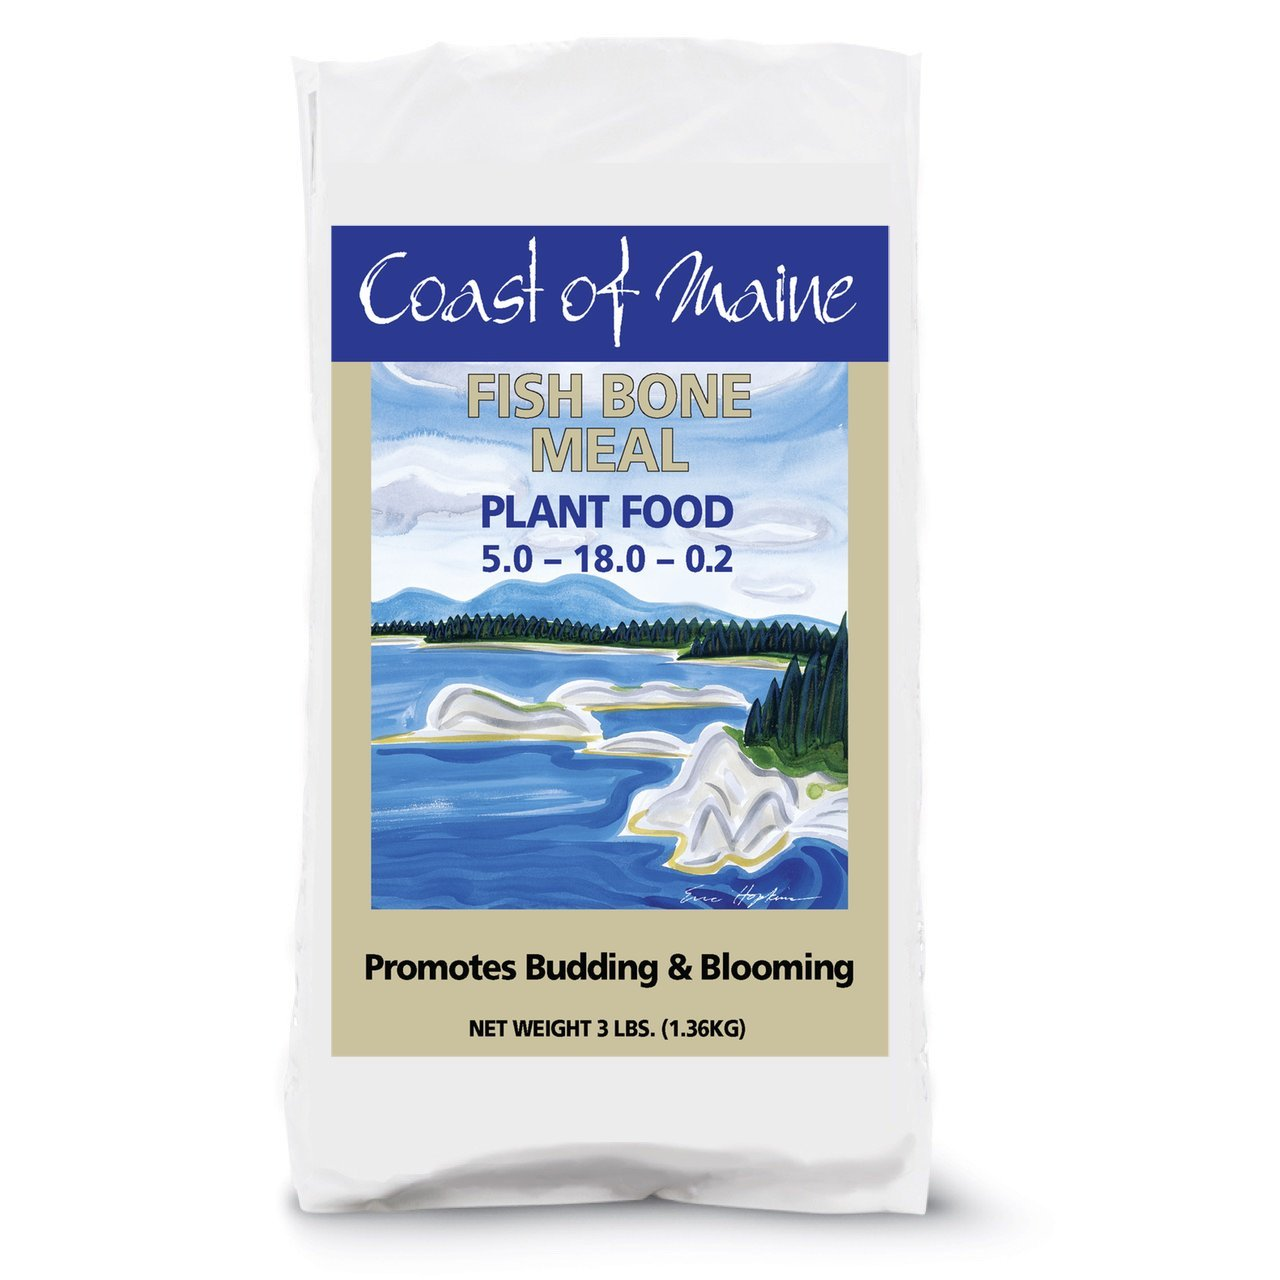 Coast of Maine Fish Bone Meal - Soil Amendment, Budding & Blooming, Calcium, Phosphorus Plant Food Fertilizer coast of maine fish bone meal soil amendment budding